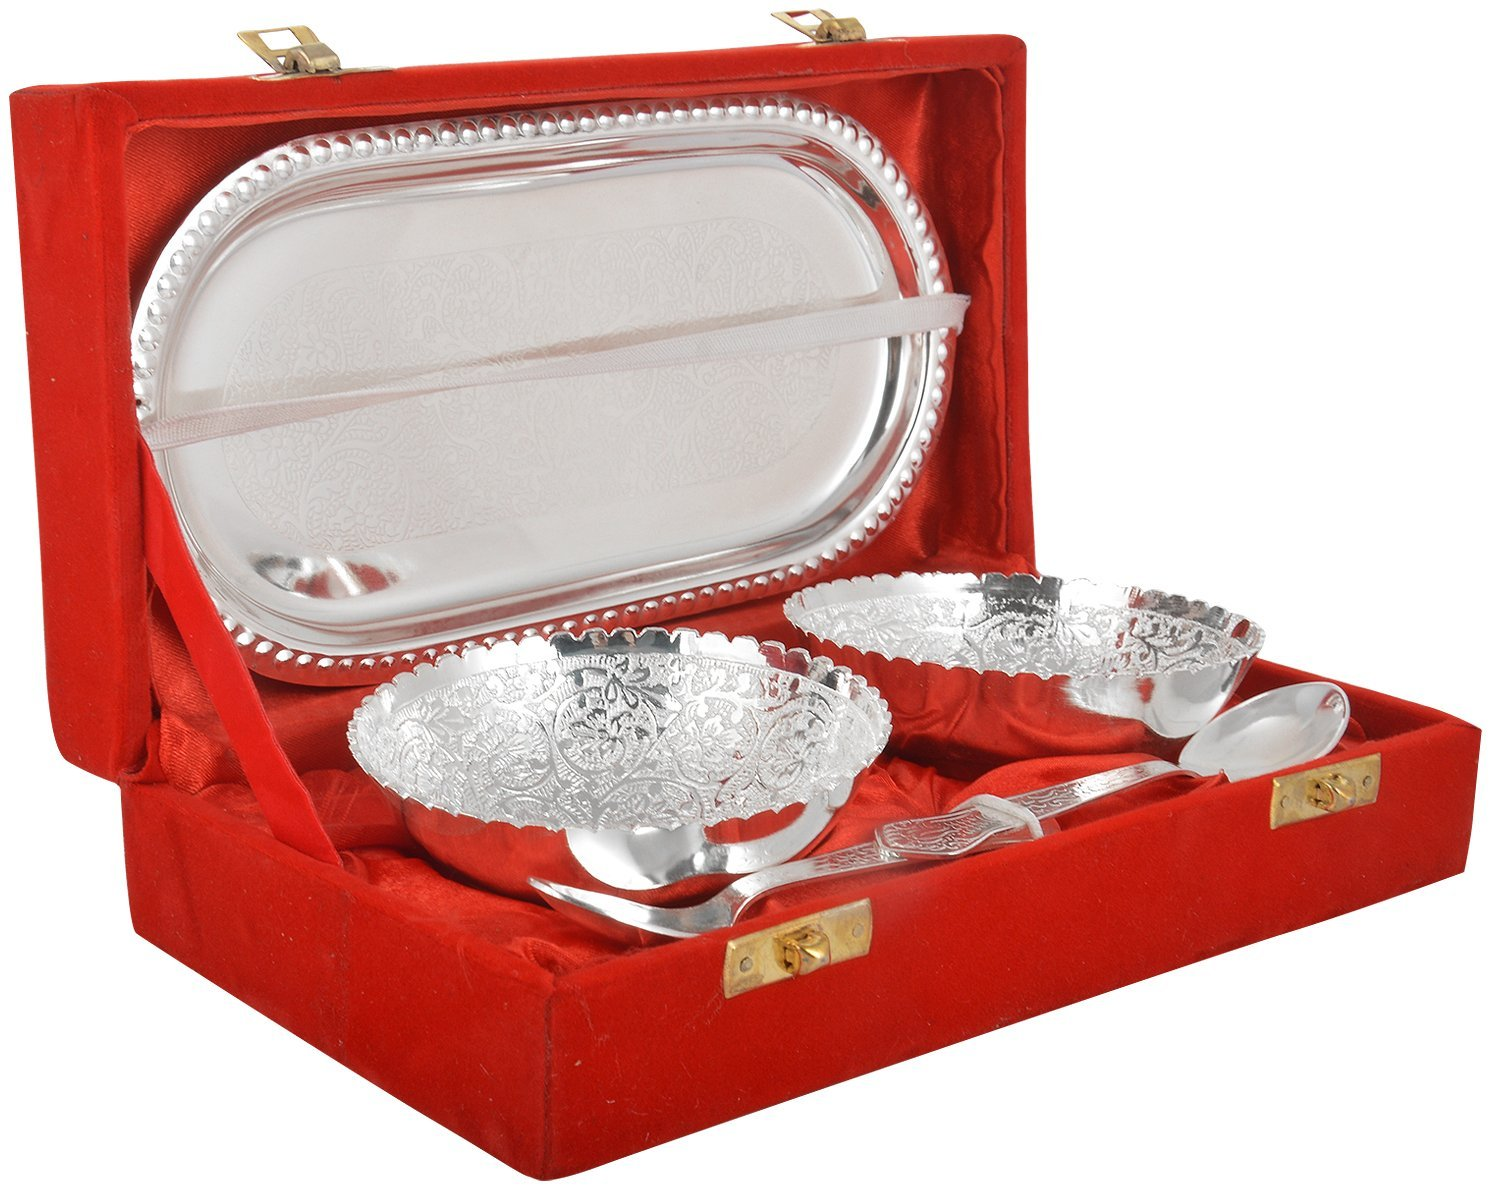 10 Pure Silver Gift Items For Marriage Below 1000